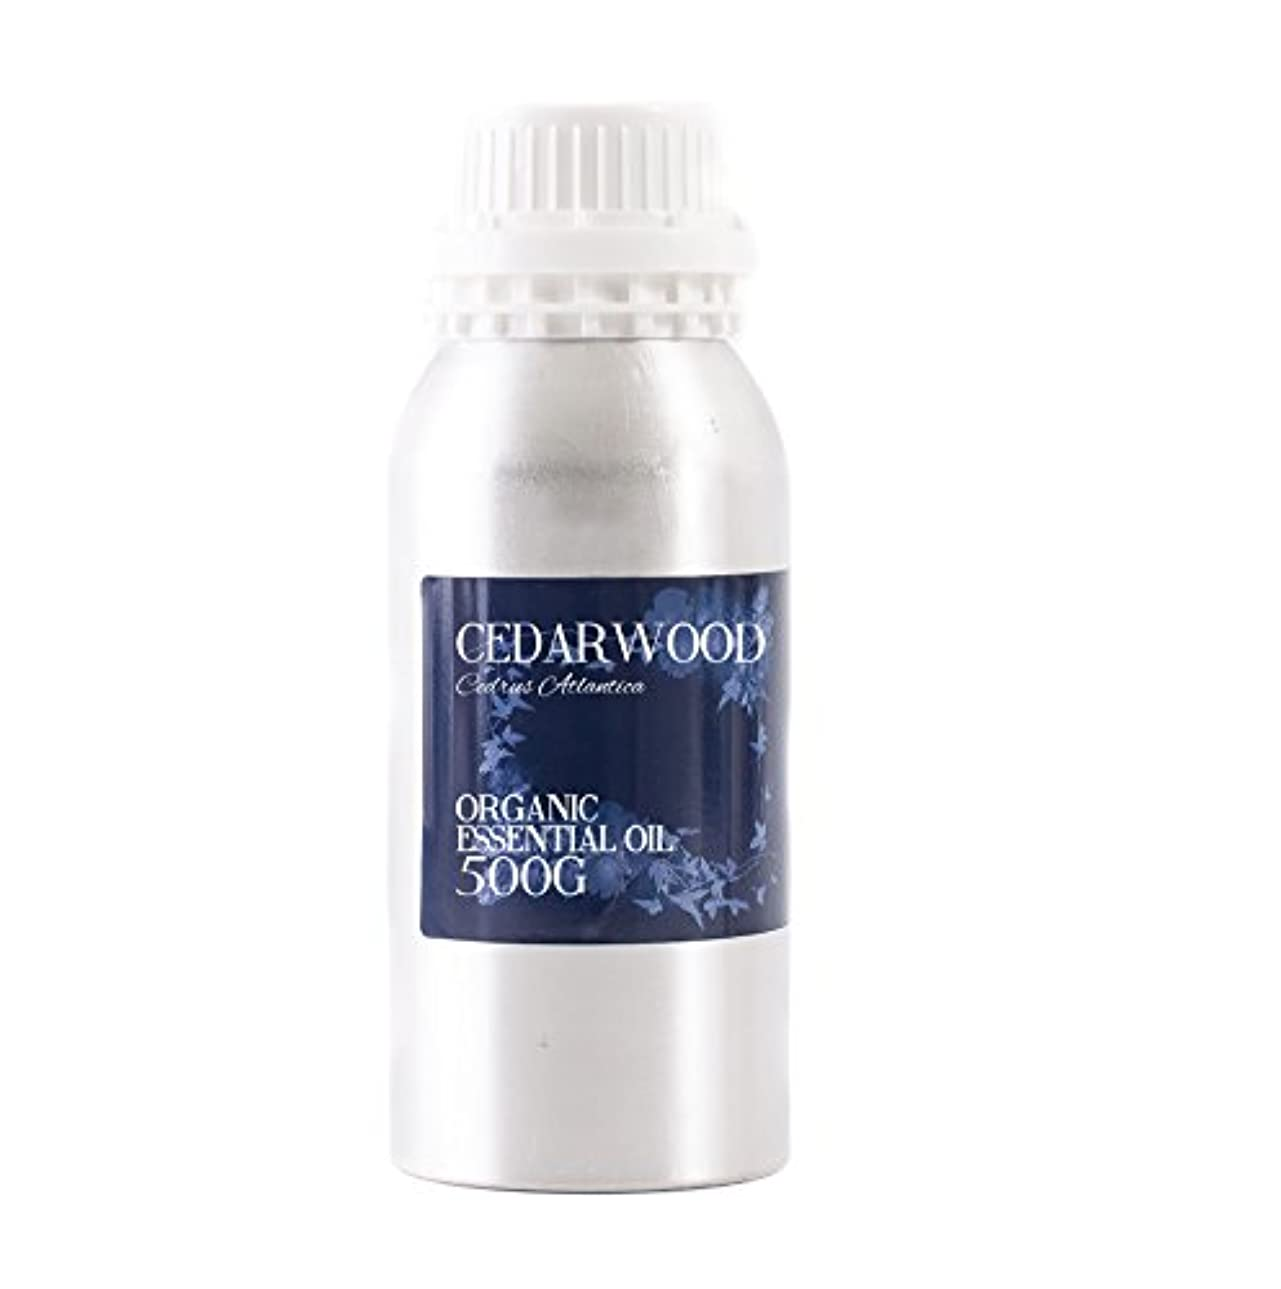 機関息子放棄Mystic Moments | Cedarwood Organic Essential Oil - 500g - 100% Pure